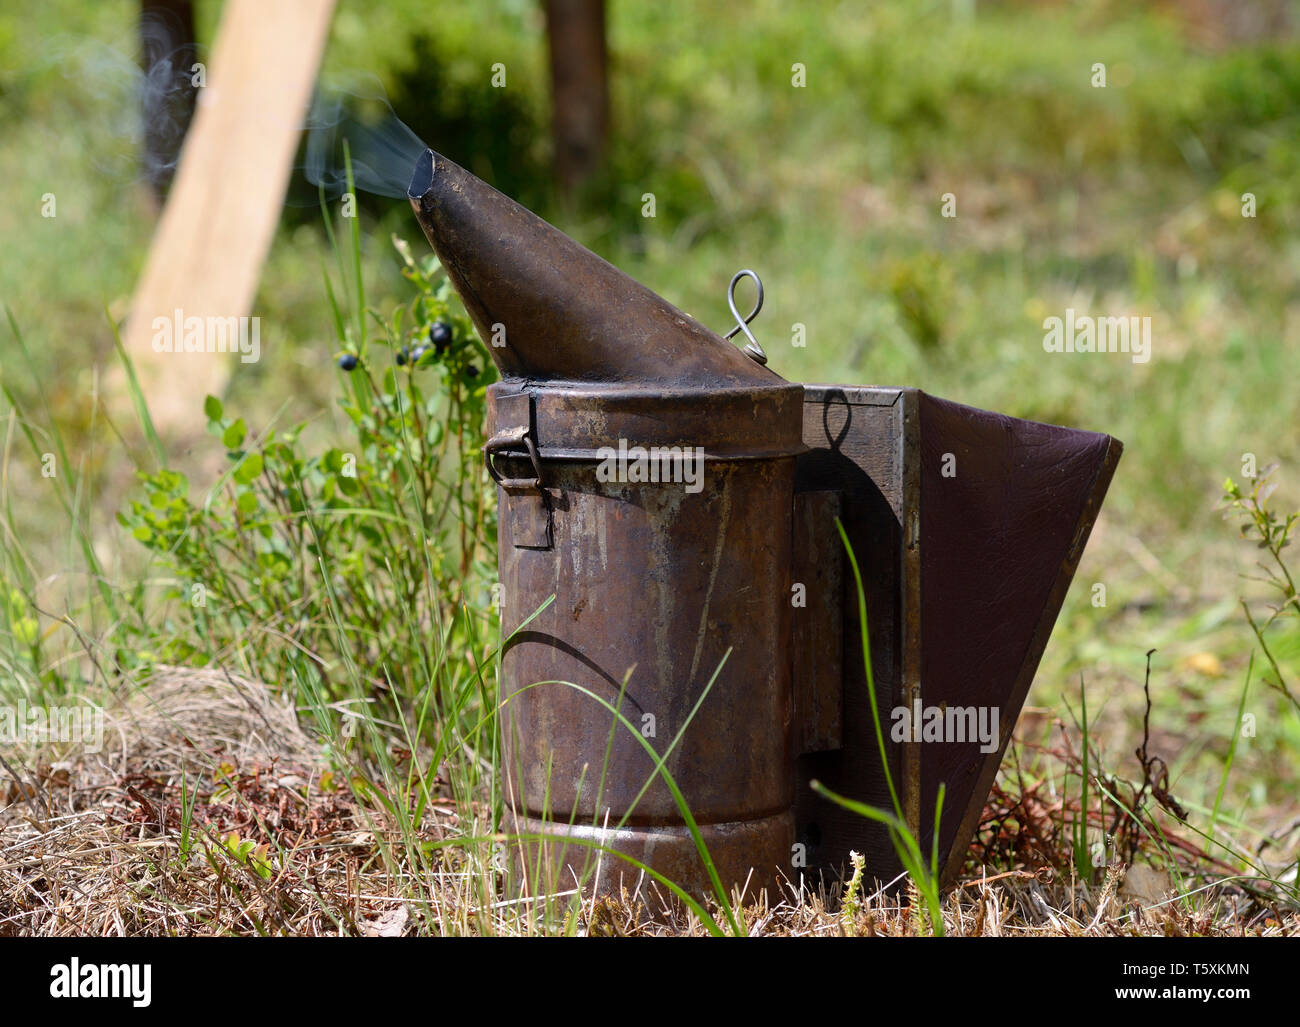 Old bee smoker. The bee smoker is used to calm bees before frame removal. - Stock Image